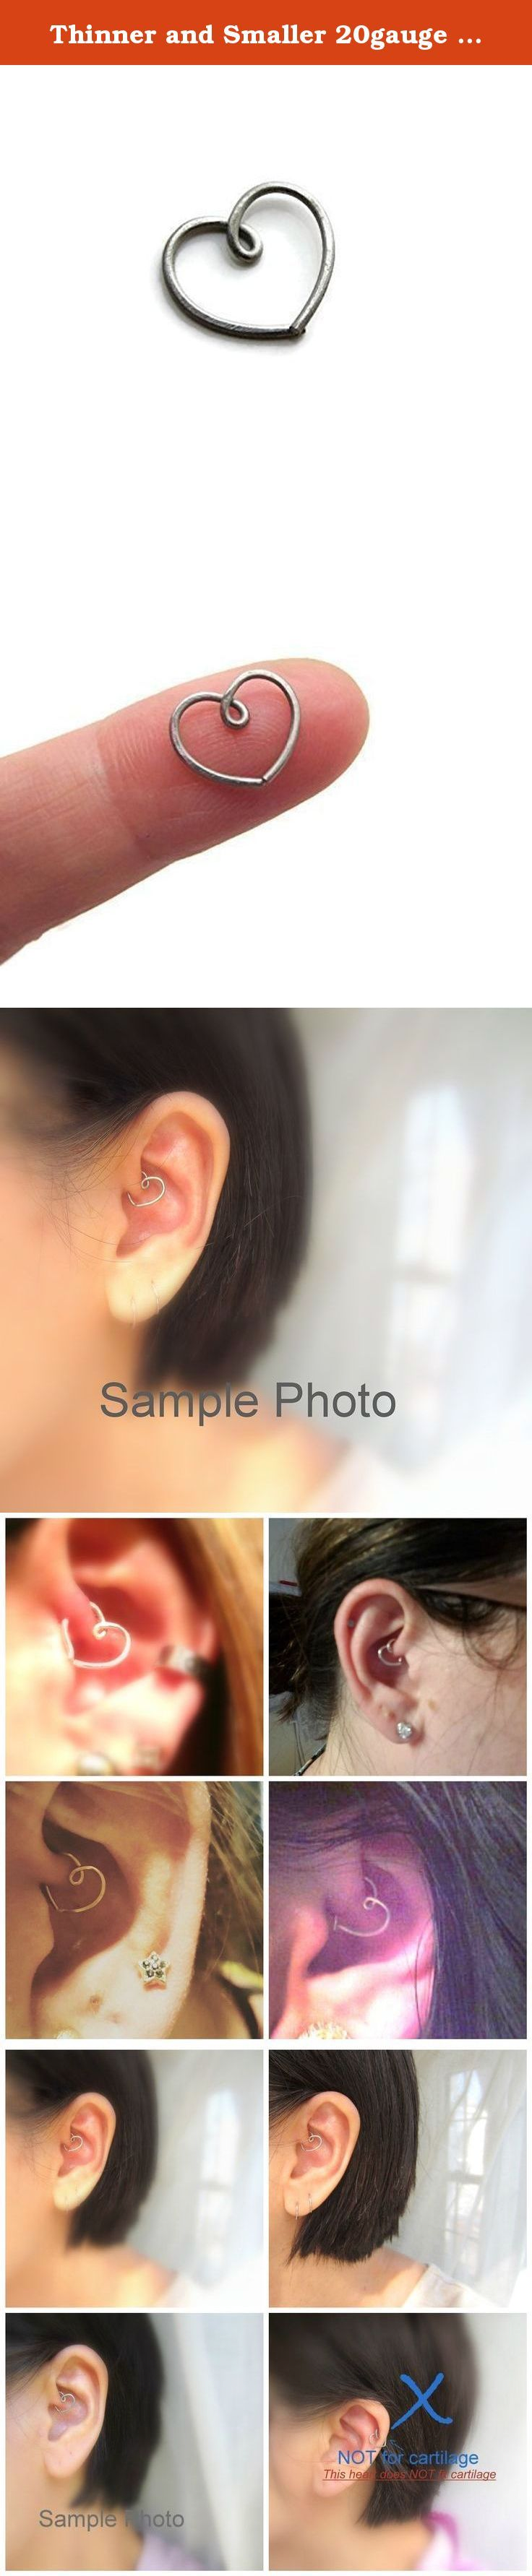 """Thinner and Smaller 20gauge size Nickel Free Solid Titanium Heart Earring for Daith Piercing One ( 1 ) Single. - For Your Single Piercing - This One ( 1 ) Single Heart is the Top of the line """" Grade 1 Level """", Nickel Free Solid Titanium Heart Earring ( Natural Non-Shiny Grey ). - The Best. The Safest for Very Sensitive Ear & for people with nickel & metal allergy. - Tested & recommended by people who prefer pure metals & really wanted a surgical/or/medical grade Titanium Earring…"""